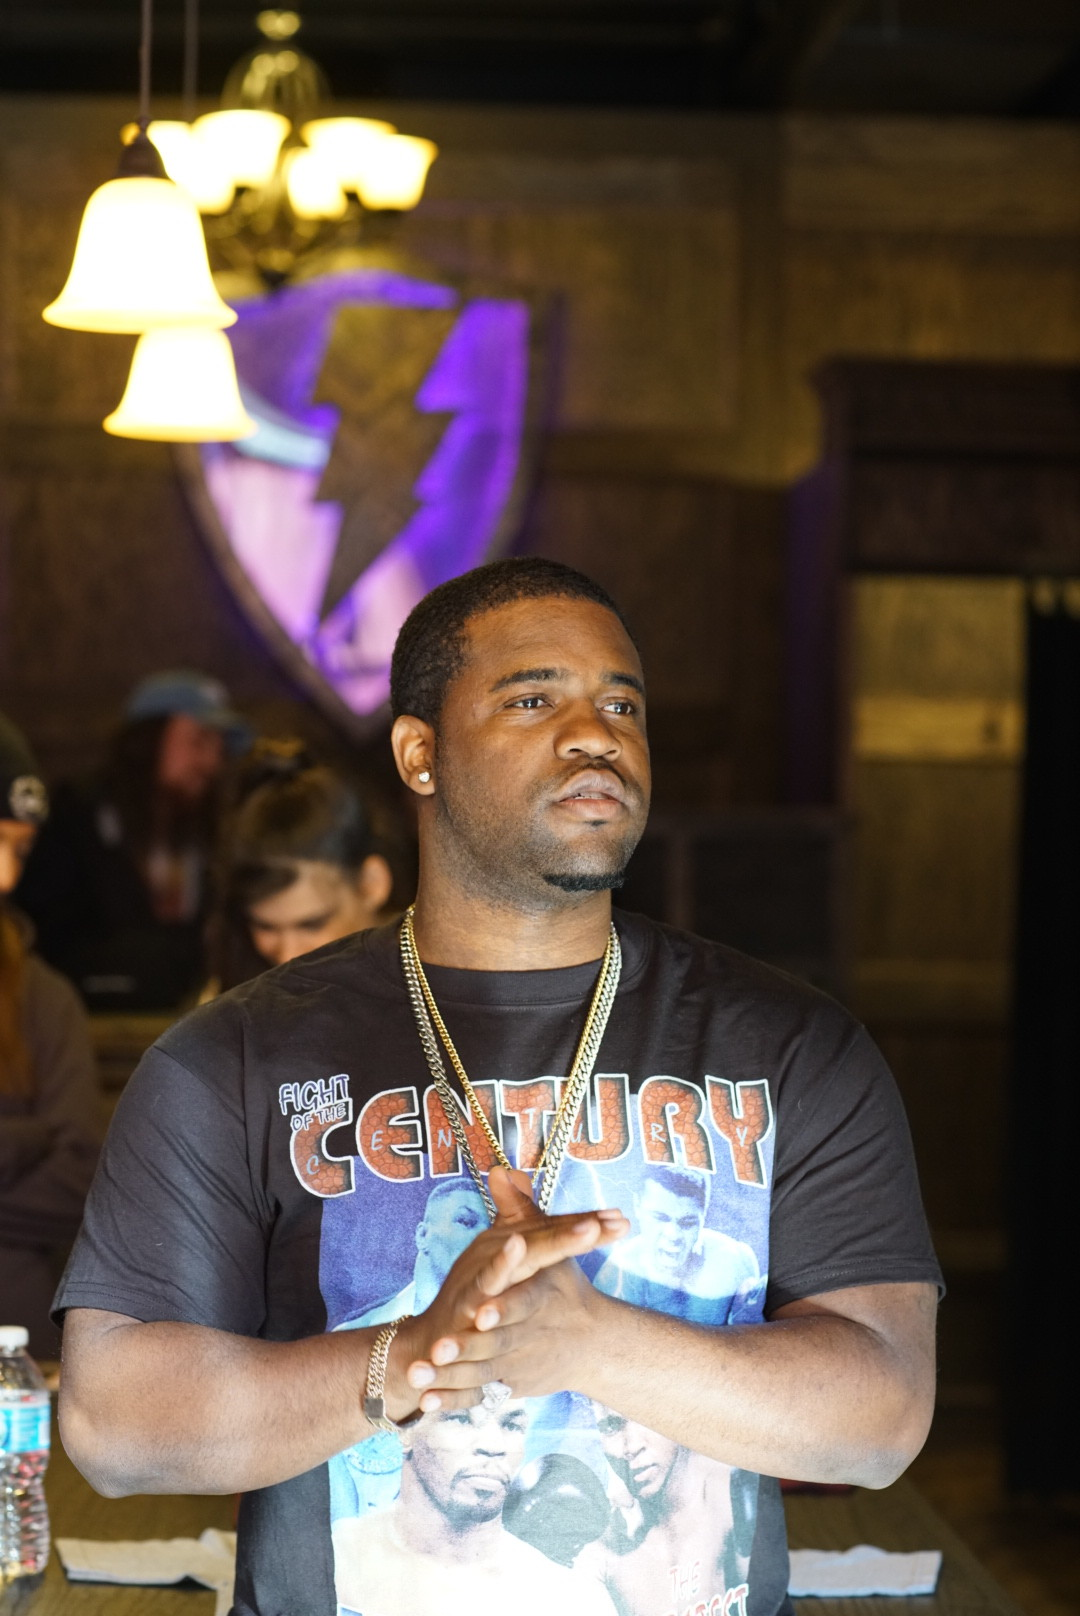 Thank You To Aap Ferg For Stopping By Jugrnaut Cant Stop Wont